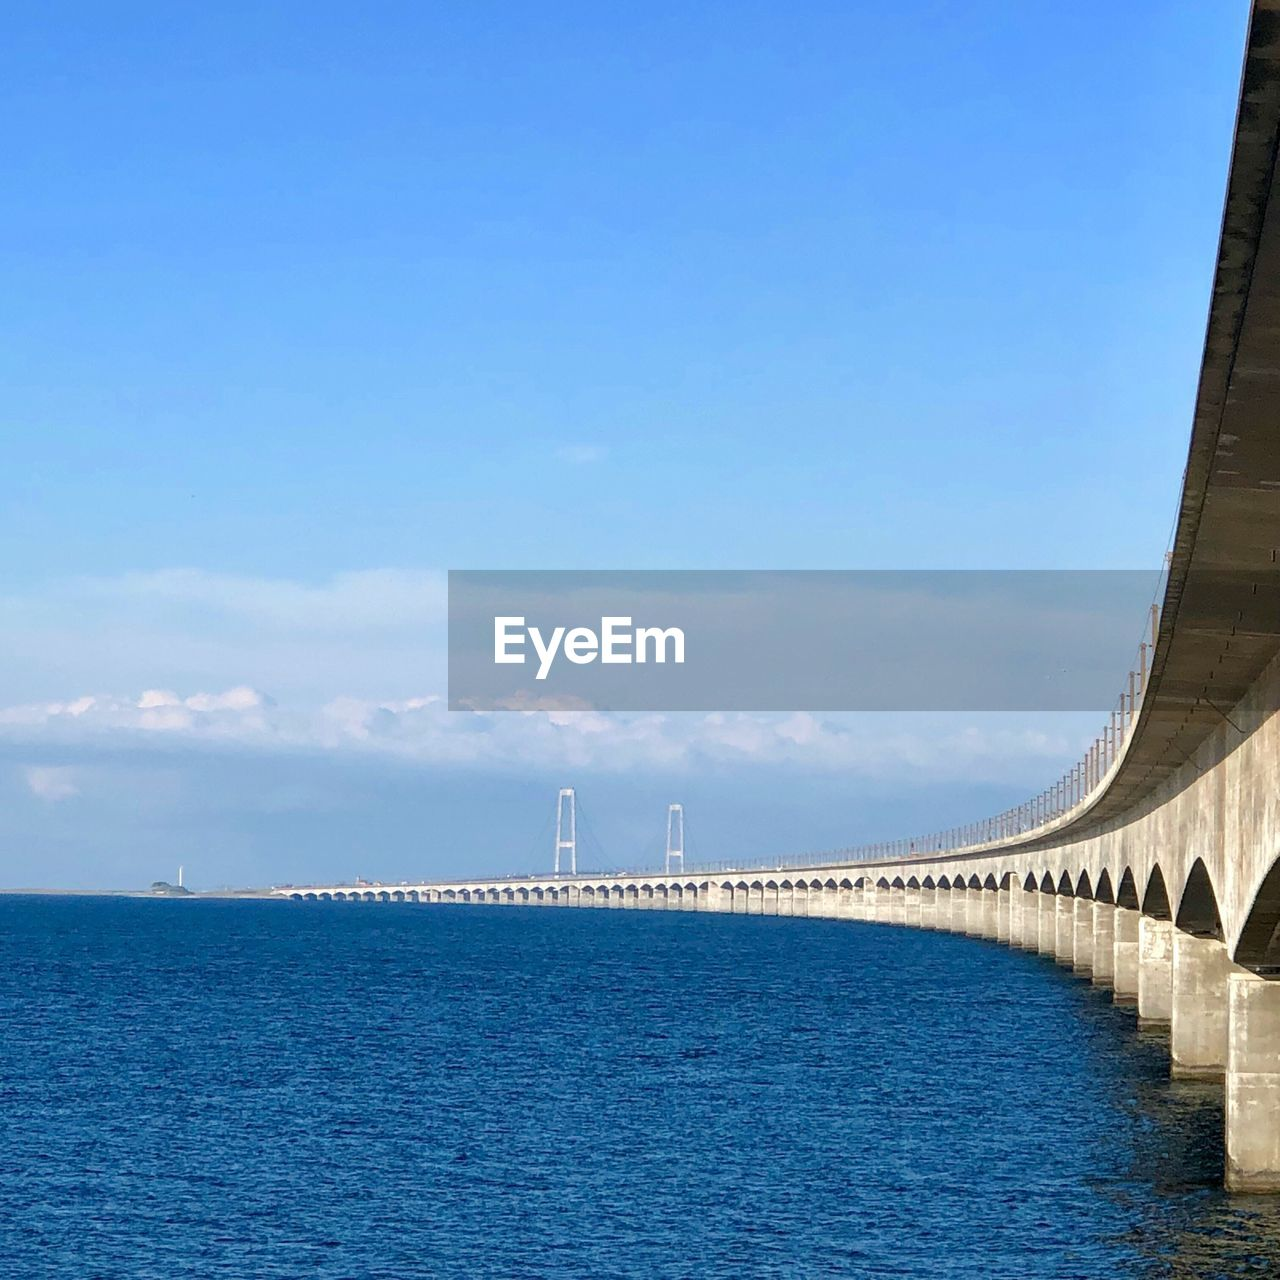 sky, water, built structure, architecture, day, renewable energy, nature, sea, fuel and power generation, no people, scenics - nature, environmental conservation, alternative energy, turbine, wind turbine, beauty in nature, environment, connection, blue, outdoors, sustainable resources